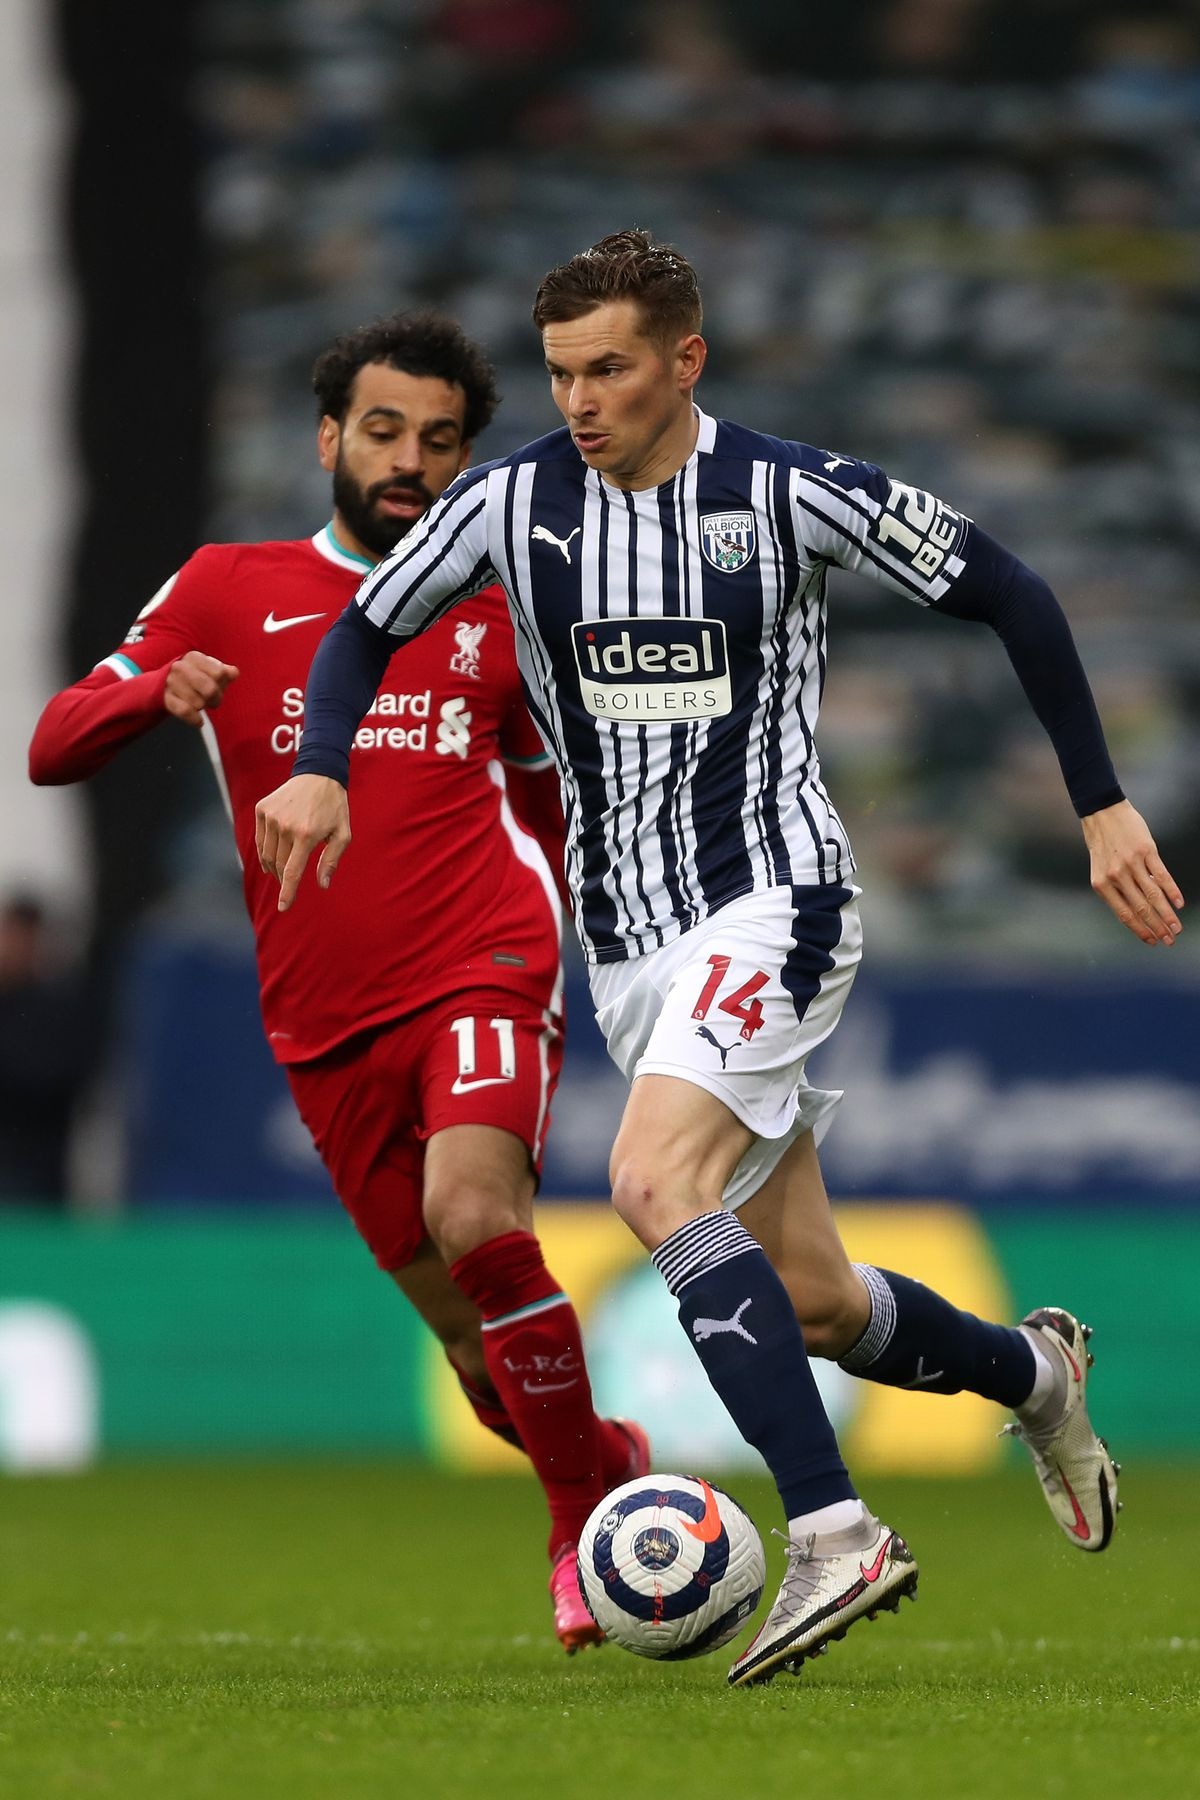 Conor Townsend of West Bromwich Albion and Mohamed Salah of Liverpool. (AMA)